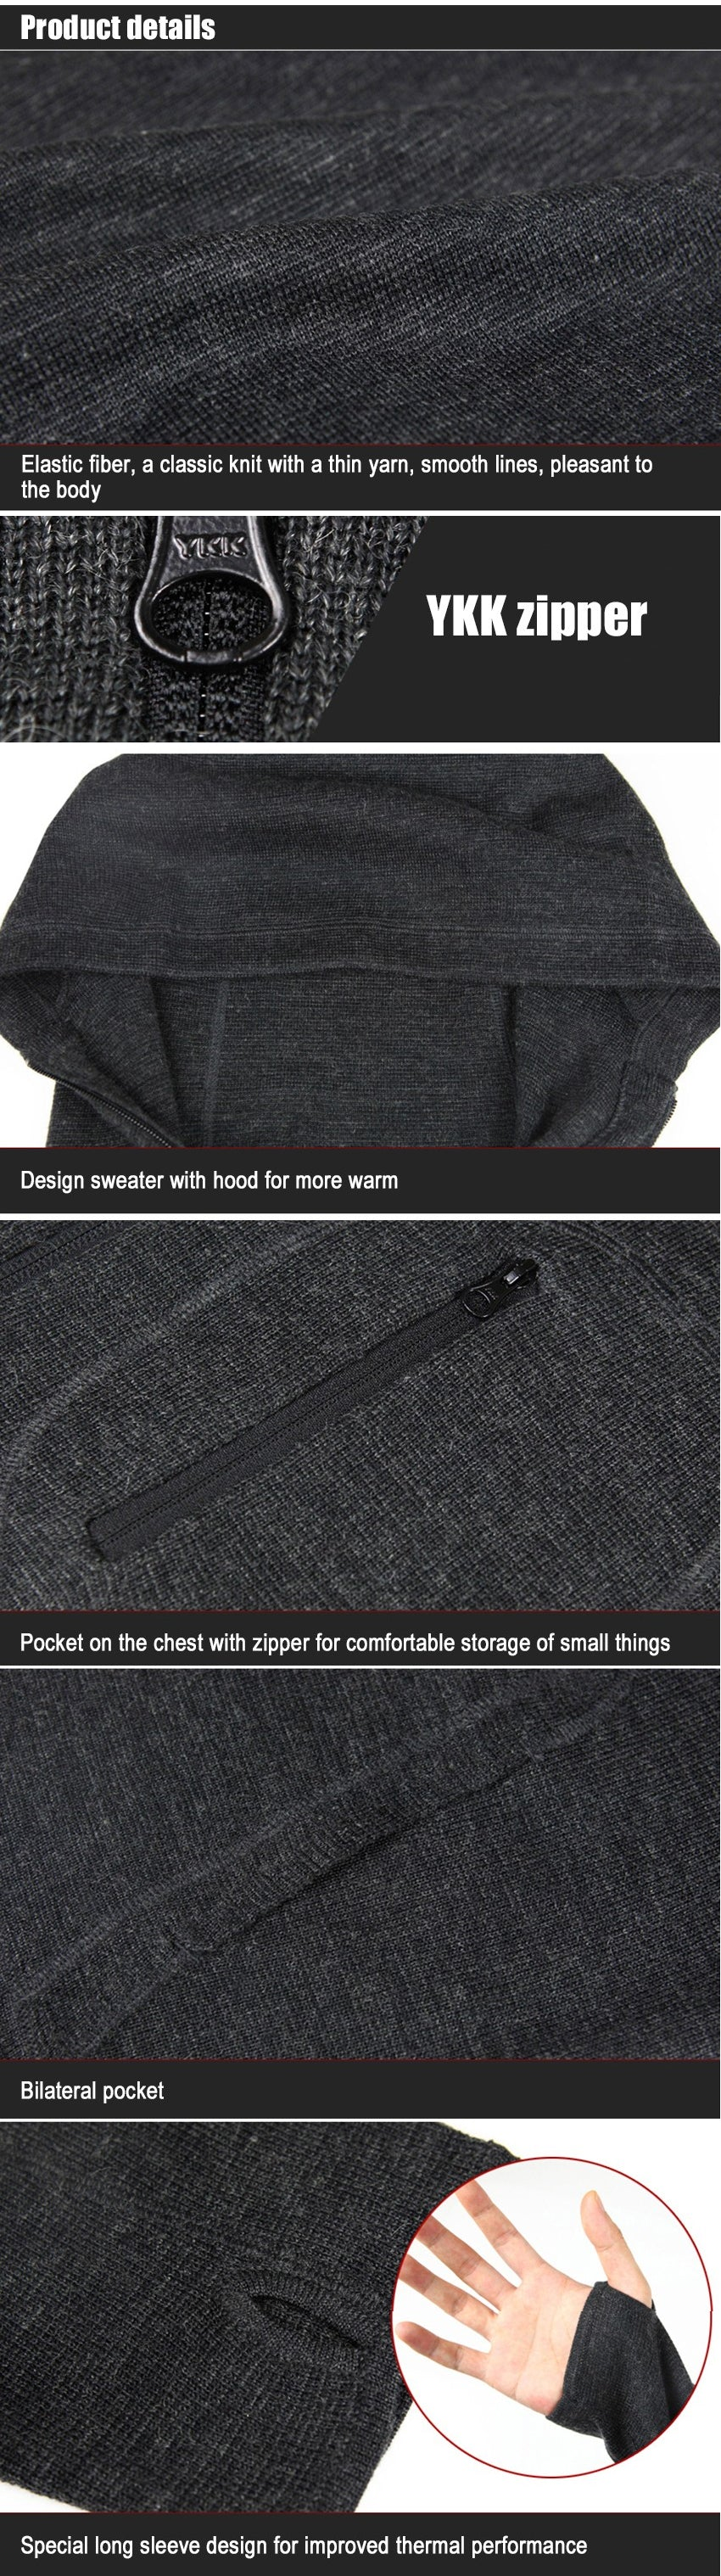 Tactical Hoodie Zipped Woollen Sweater for Men - Black, Grey or Khaki